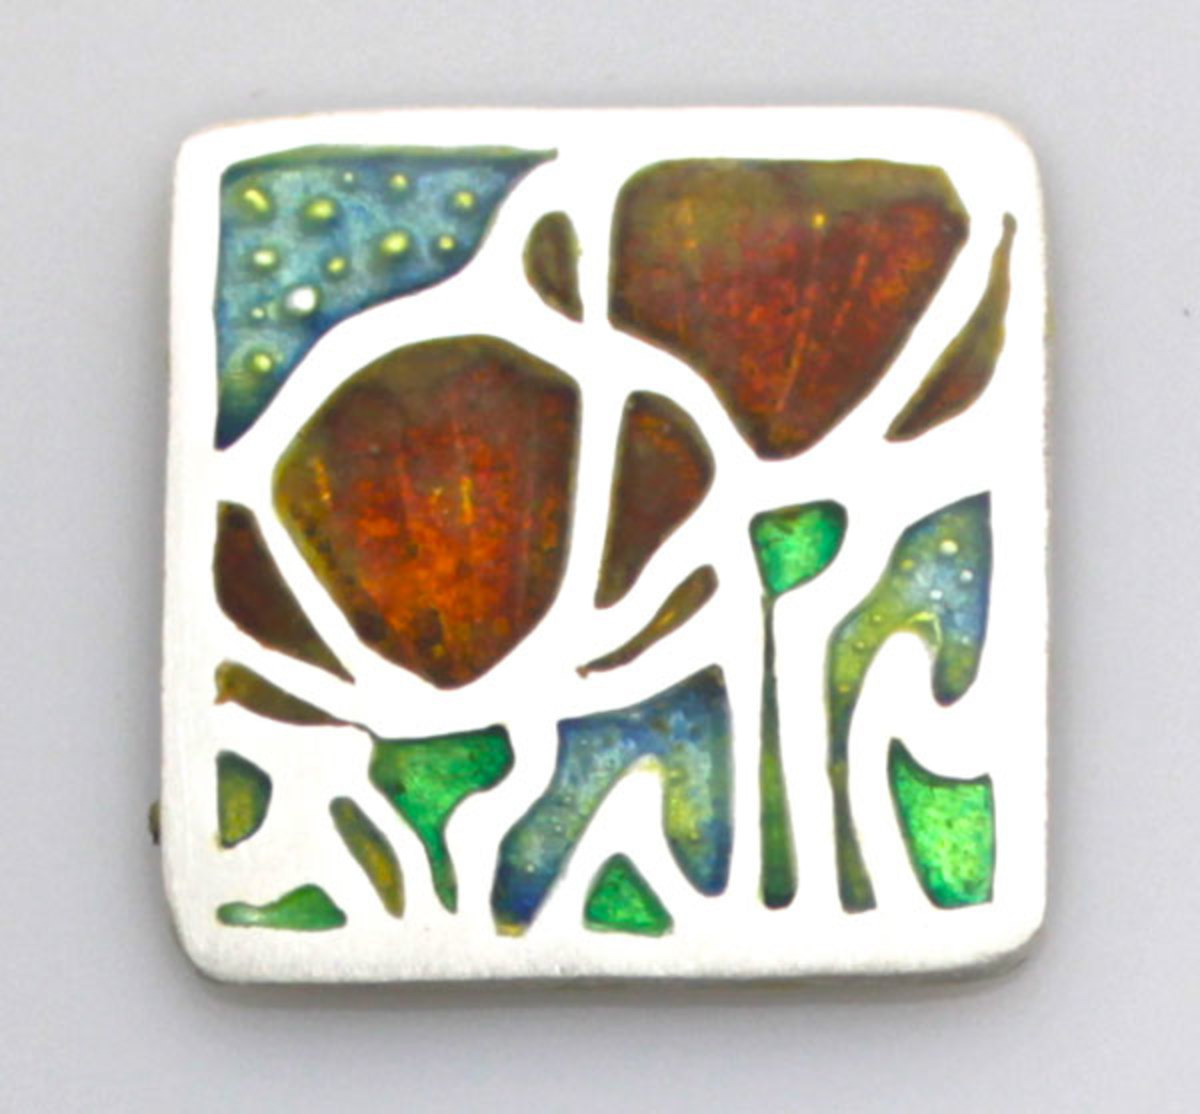 Silver metal clay impressed with a deep-relief texture created with a Silhouette CAMEO on Scratch-Foam, then fired and filled with enamel.